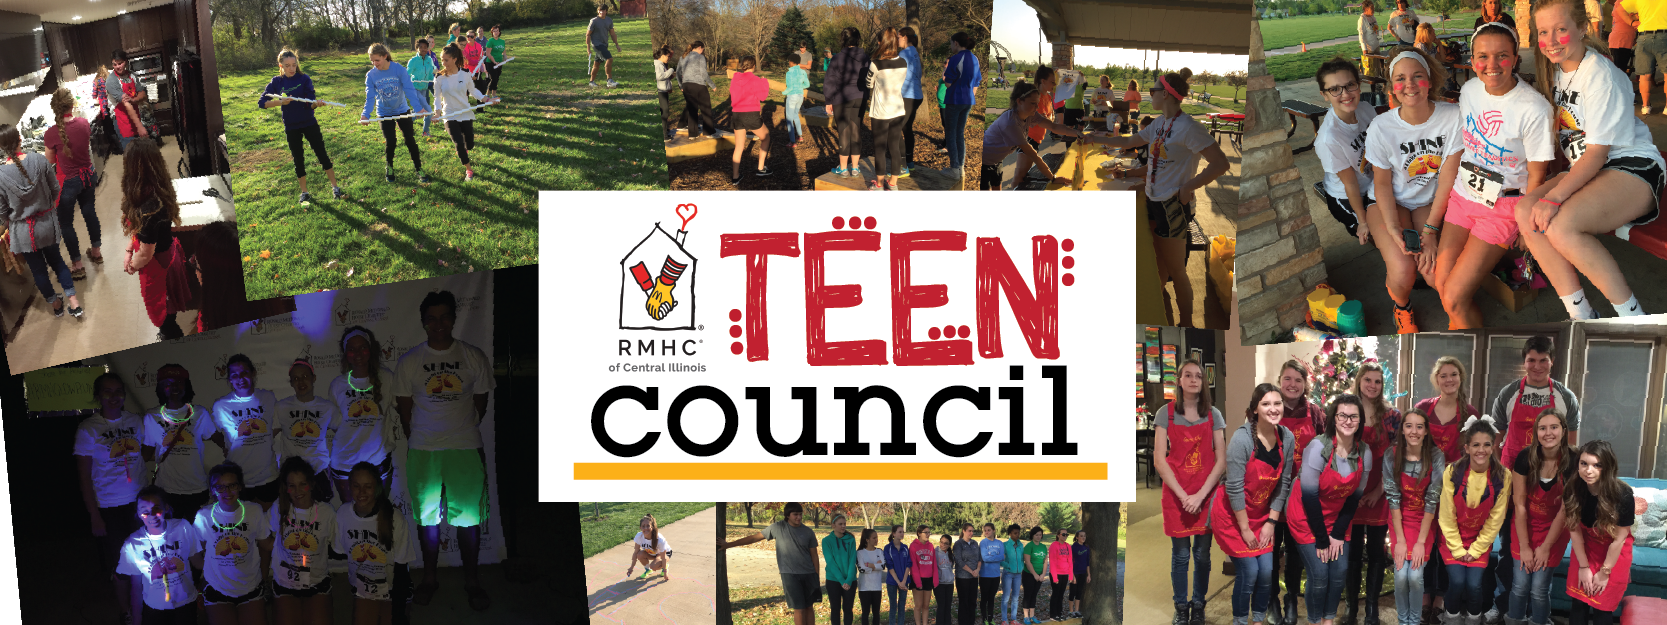 Through the Teen Council year, students strengthen and develop skills in leadership, teamwork, responsibility and communication, while supporting the mission of the House to serve children and families.